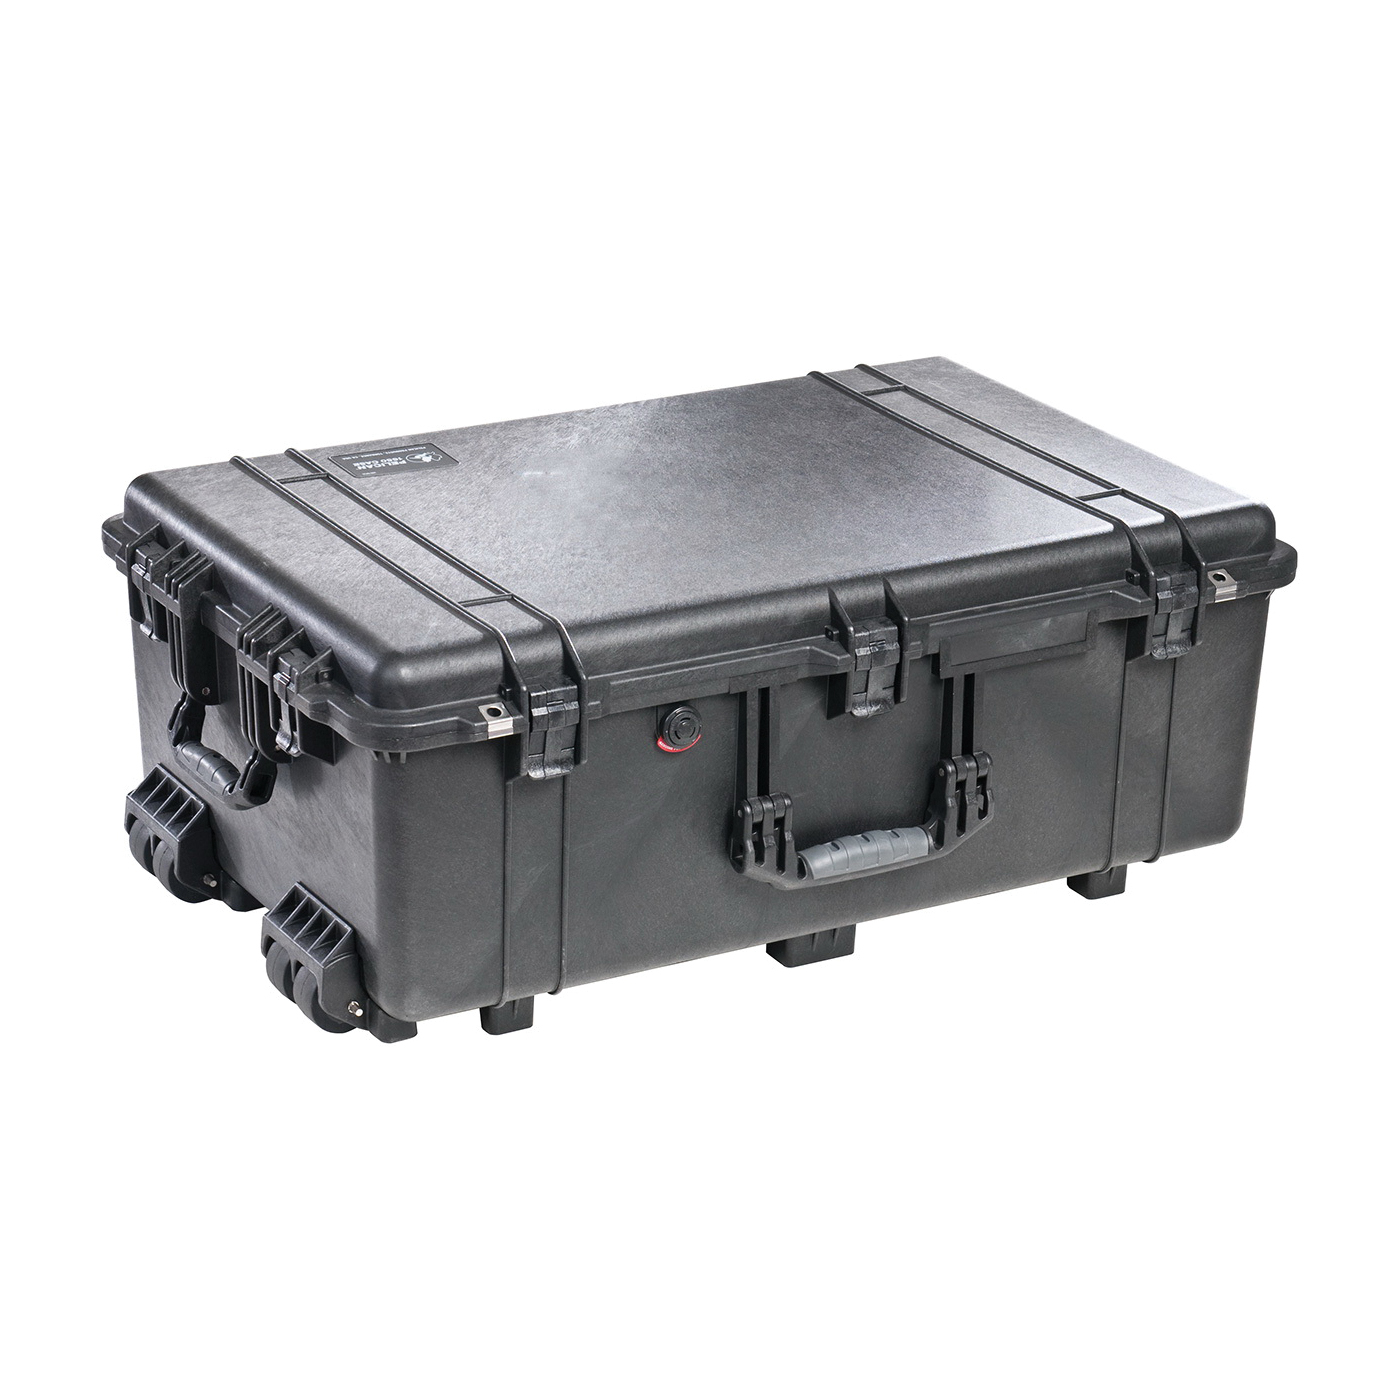 Pelican™ PROTECTOR CASE™ 1120-000-150 Small Protective Case With Lid Liner and Foam, 7.46 in L x 4.96 in W x 3.33 in H, 0.01 cu-ft, Polypropylene